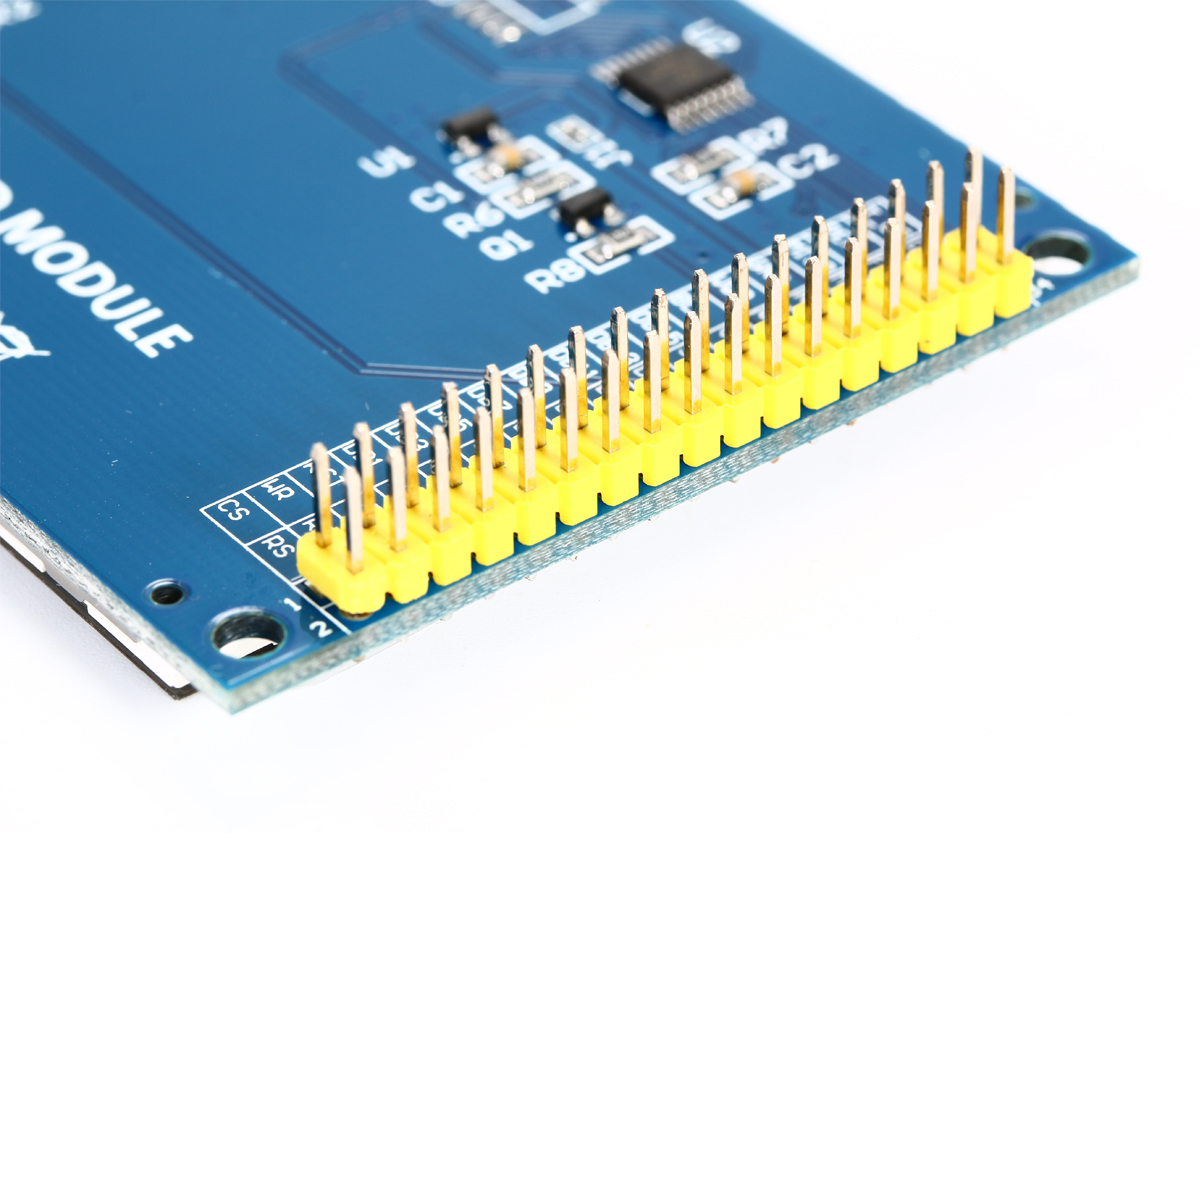 """3.2"""" Touch Screen Panel 240x320 TFT 65K Color LCD Display Module W SD Card TE283(China (Mainland))"""